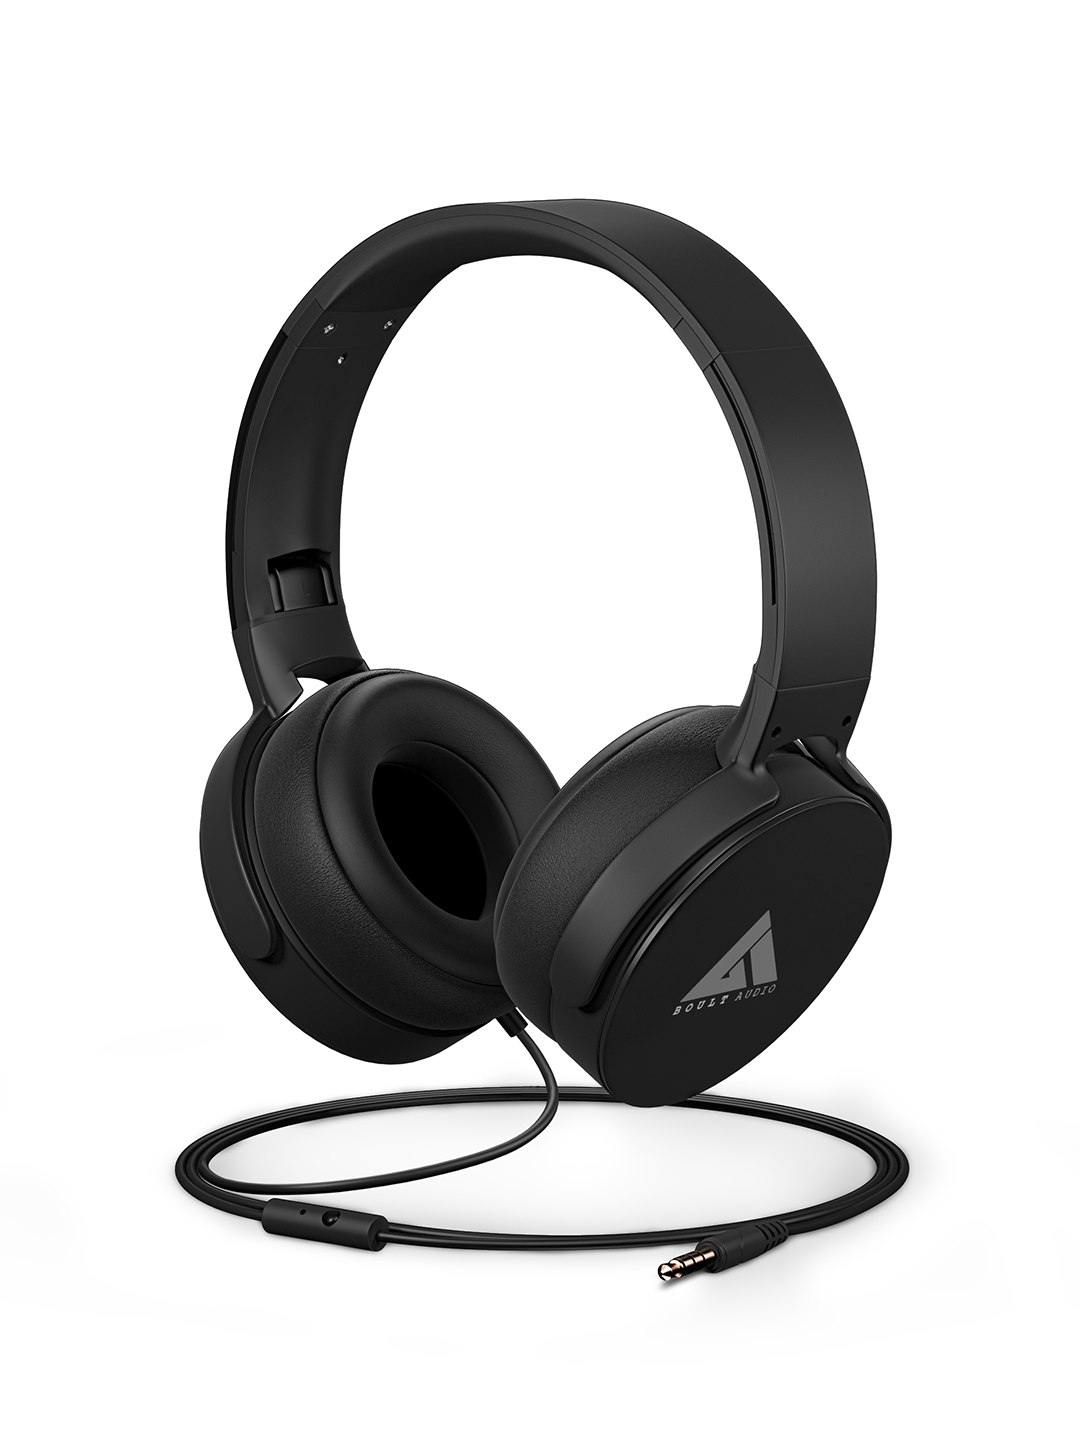 BOULT AUDIO Unisex Black Bass Buds Q2 Over Ear Wired Headphones